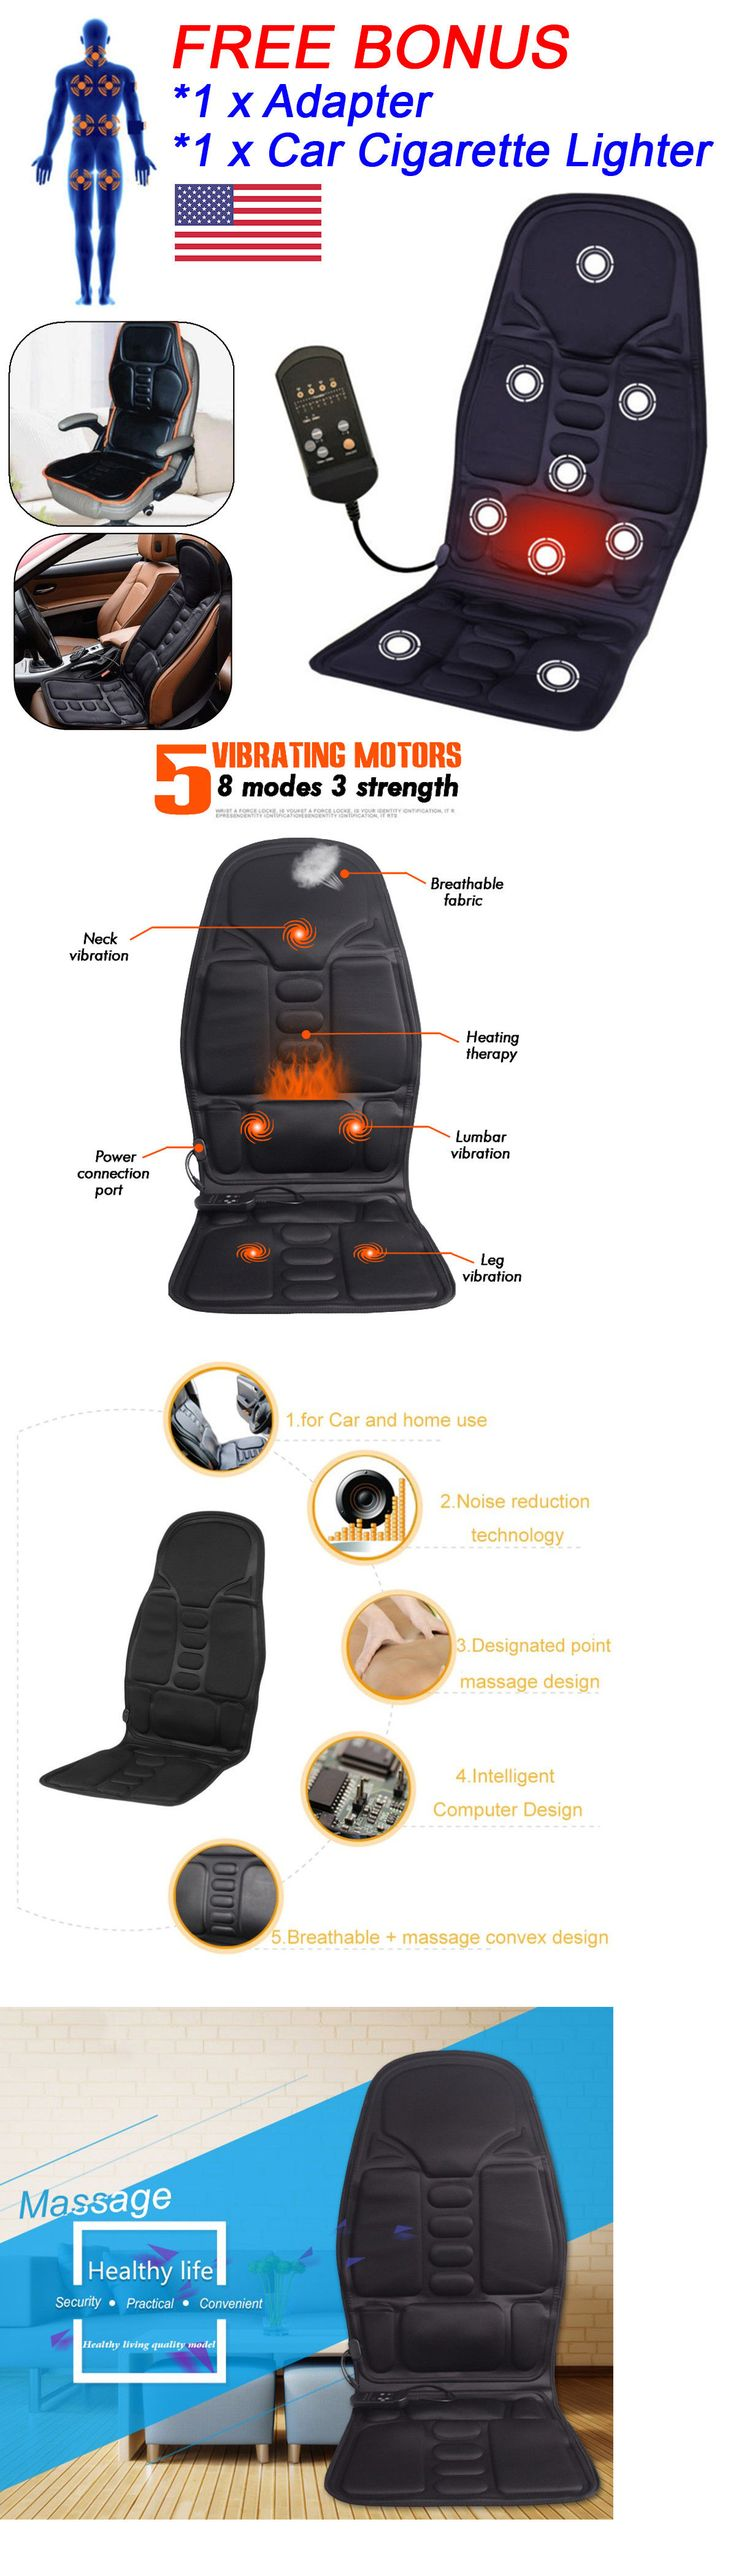 Other massage equipment and accs cushion back massage massager heated car seat chair home pad